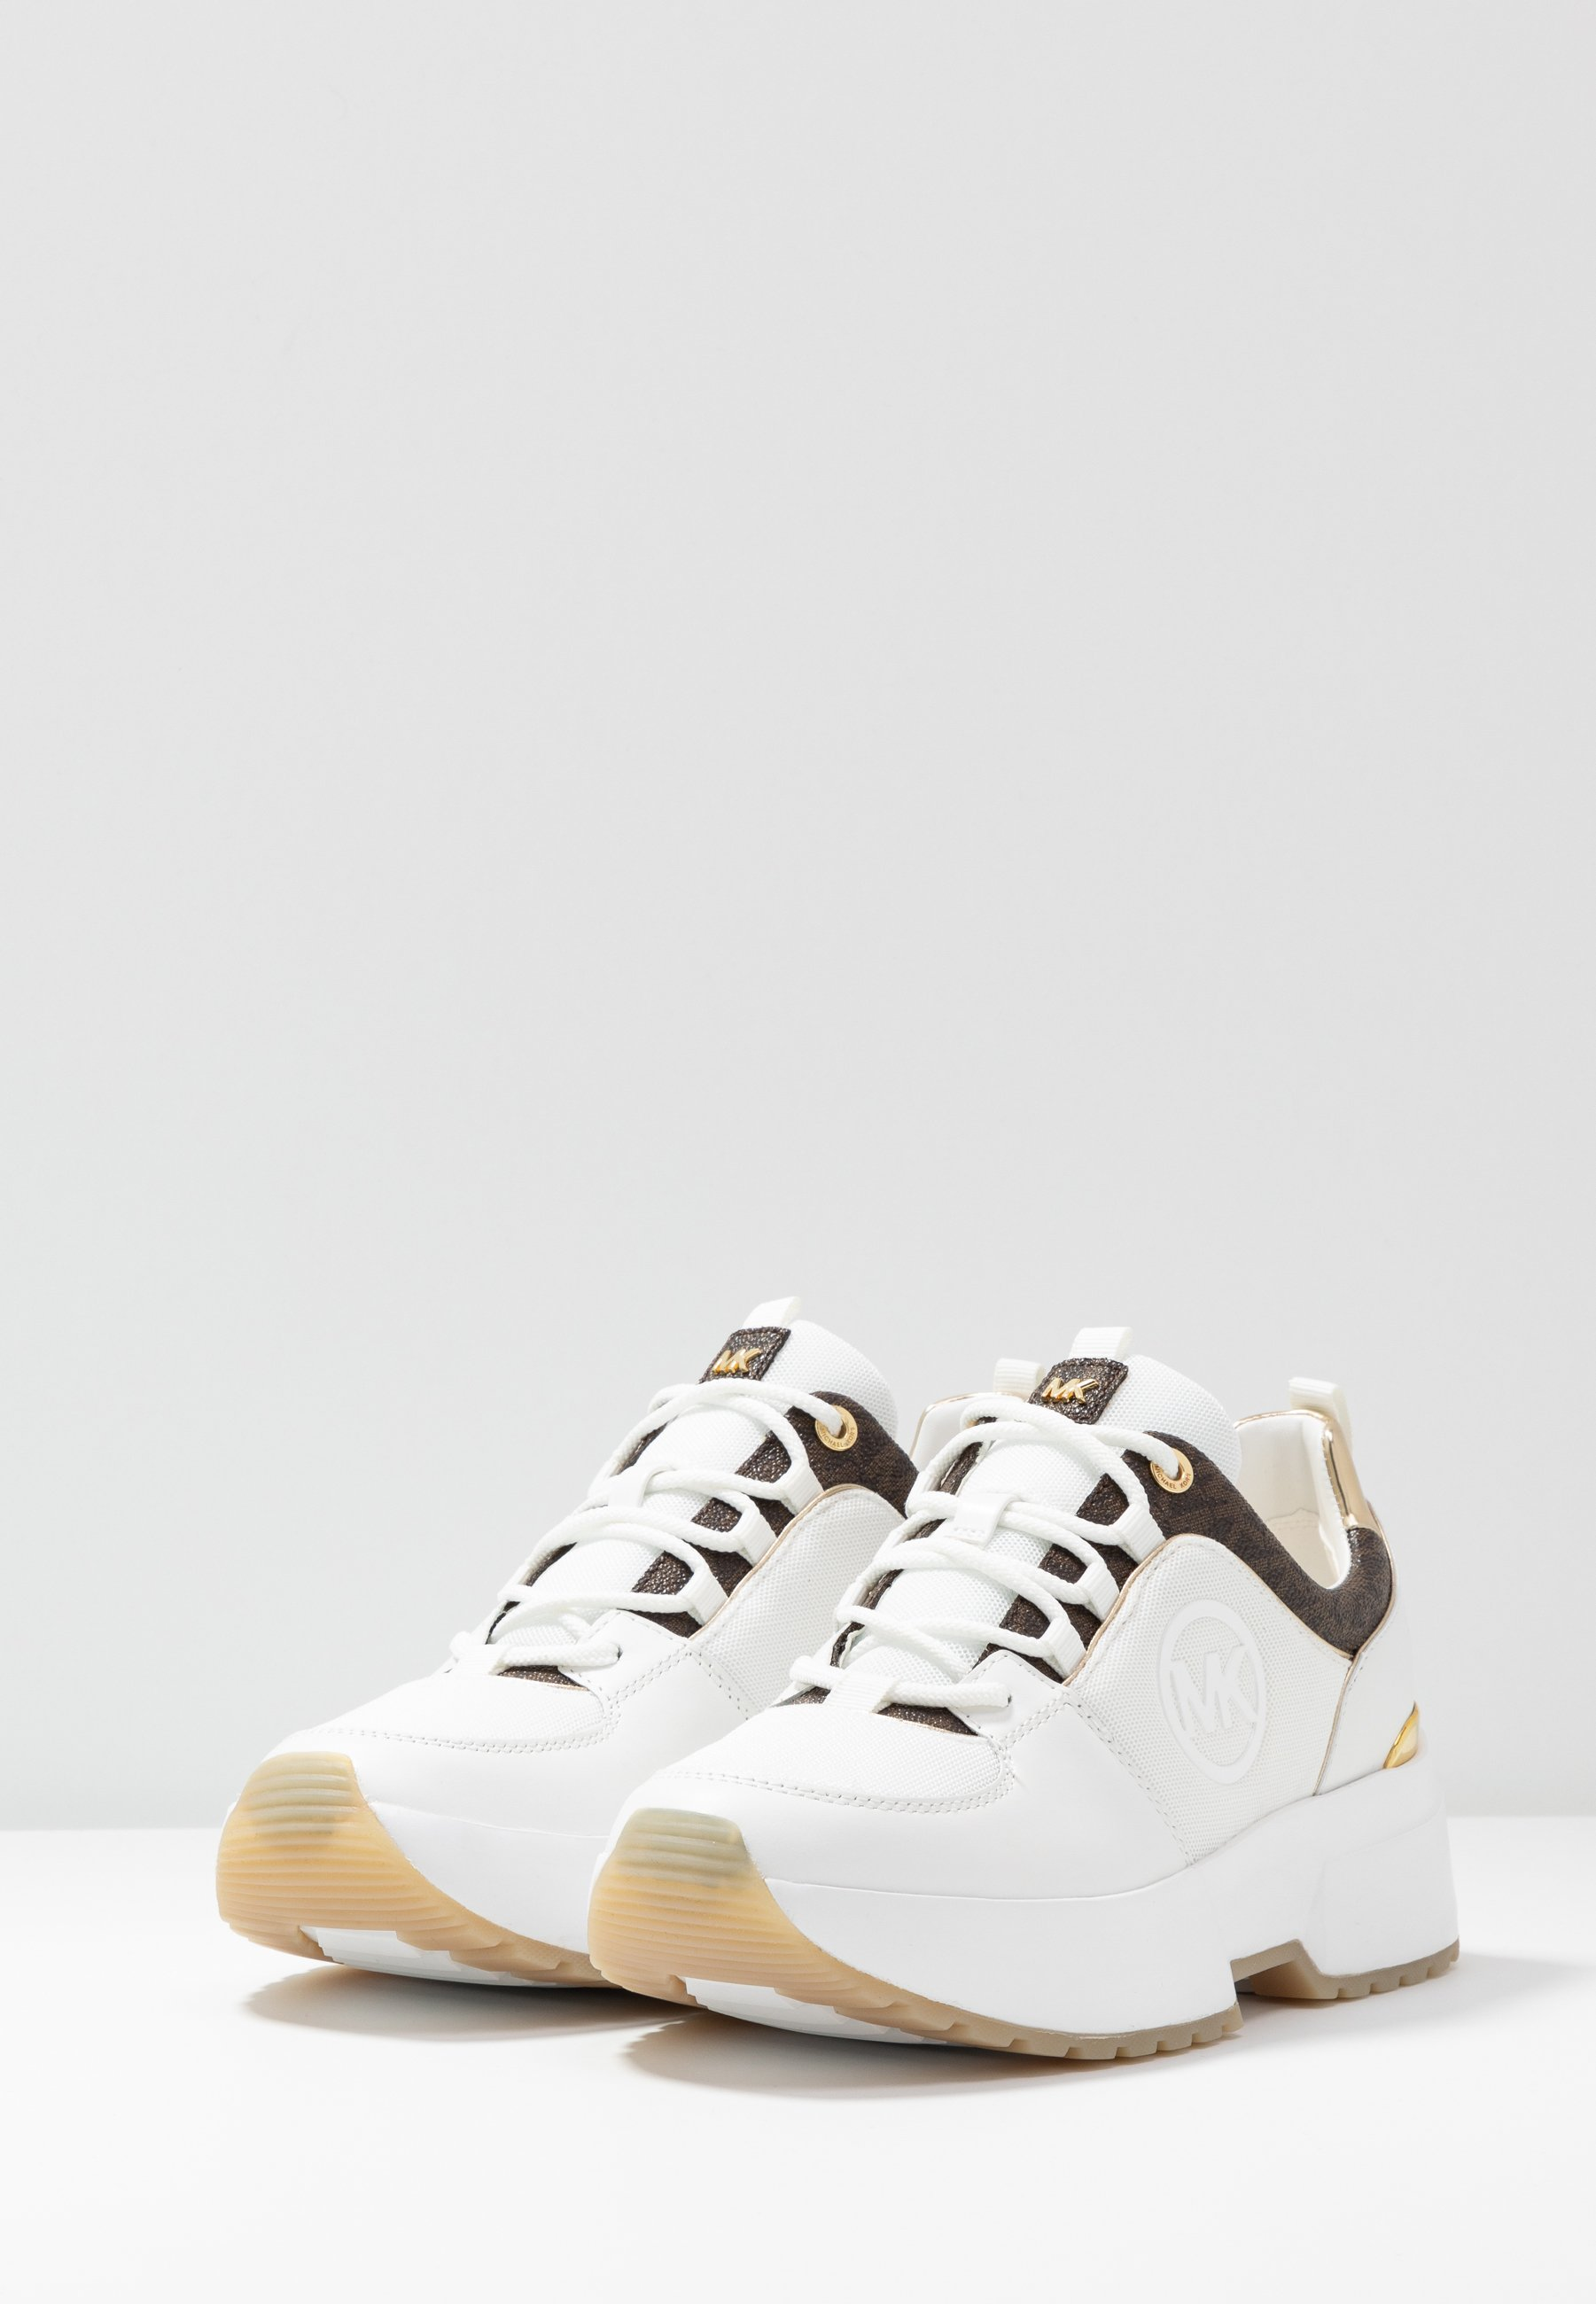 Michael Kors Cosmo Trainer - Sneakers Bright White